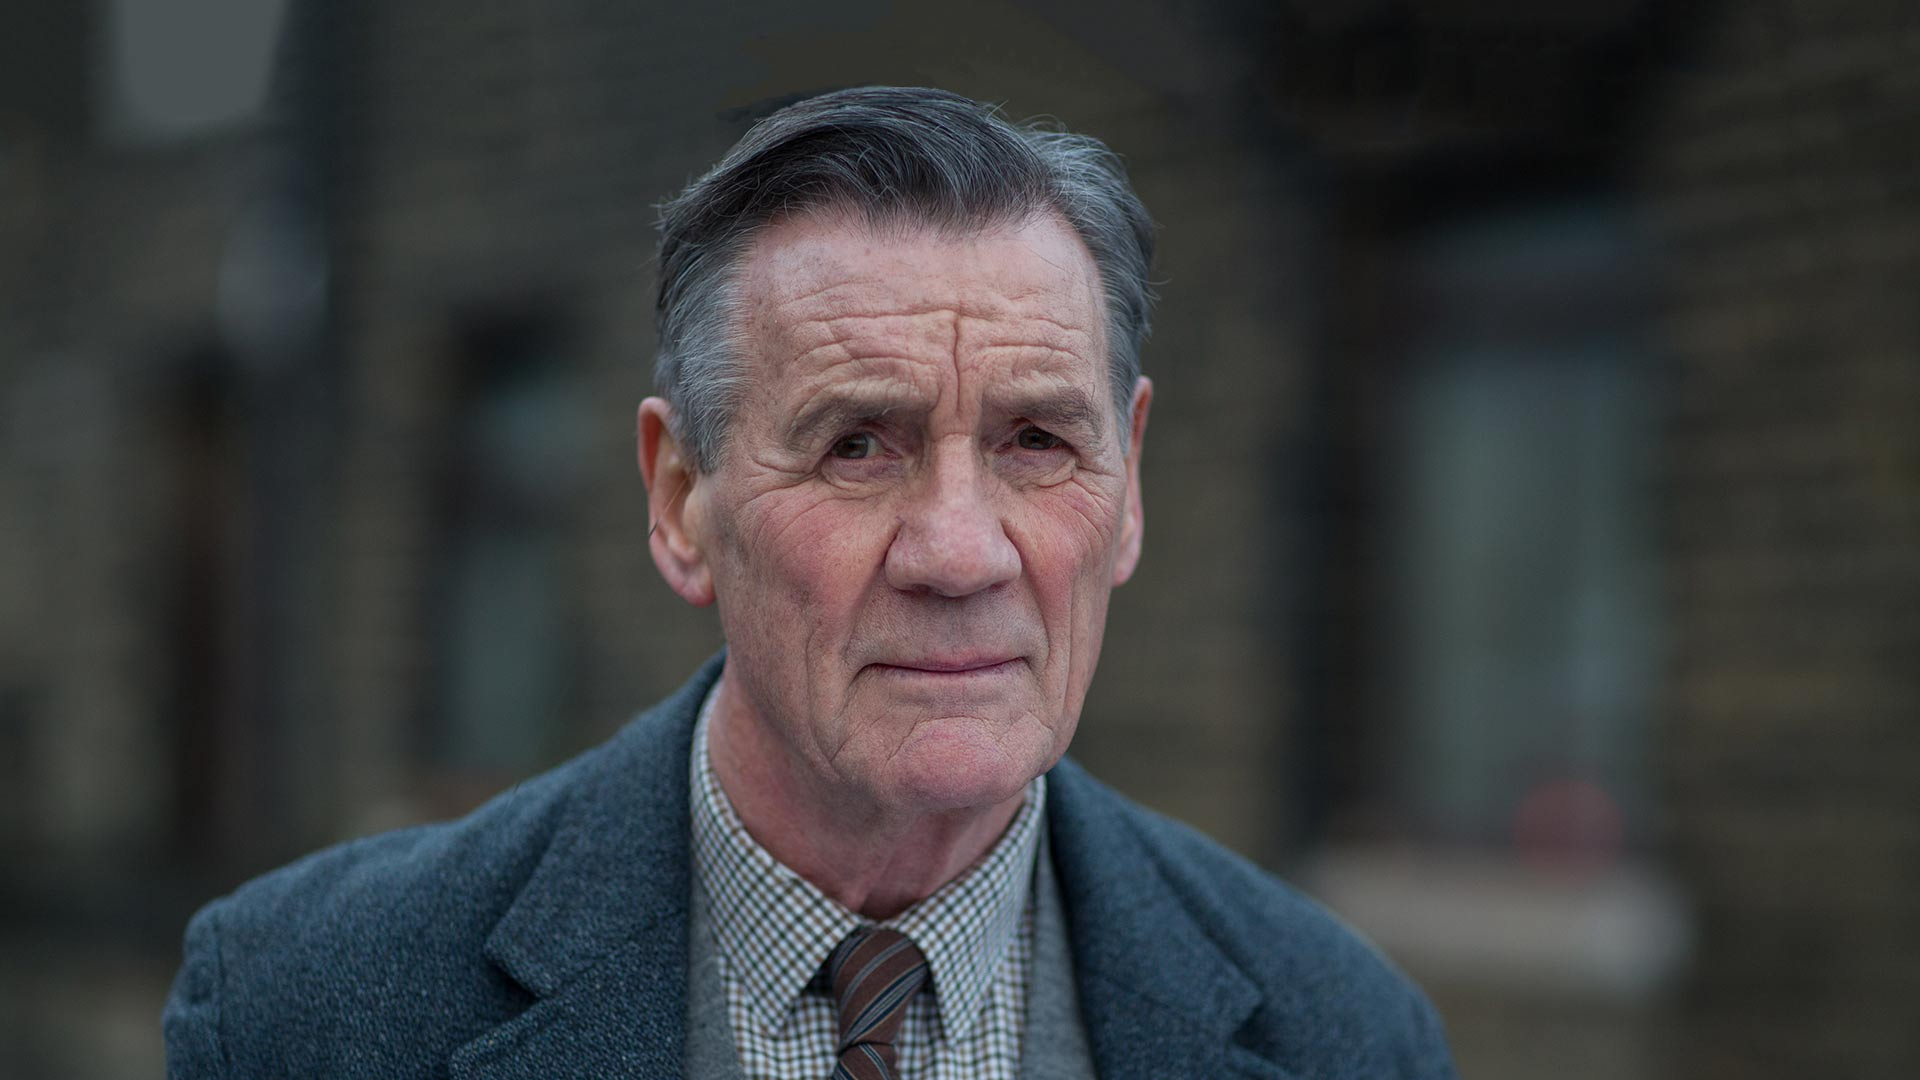 Tom Parfitt (Michael Palin)